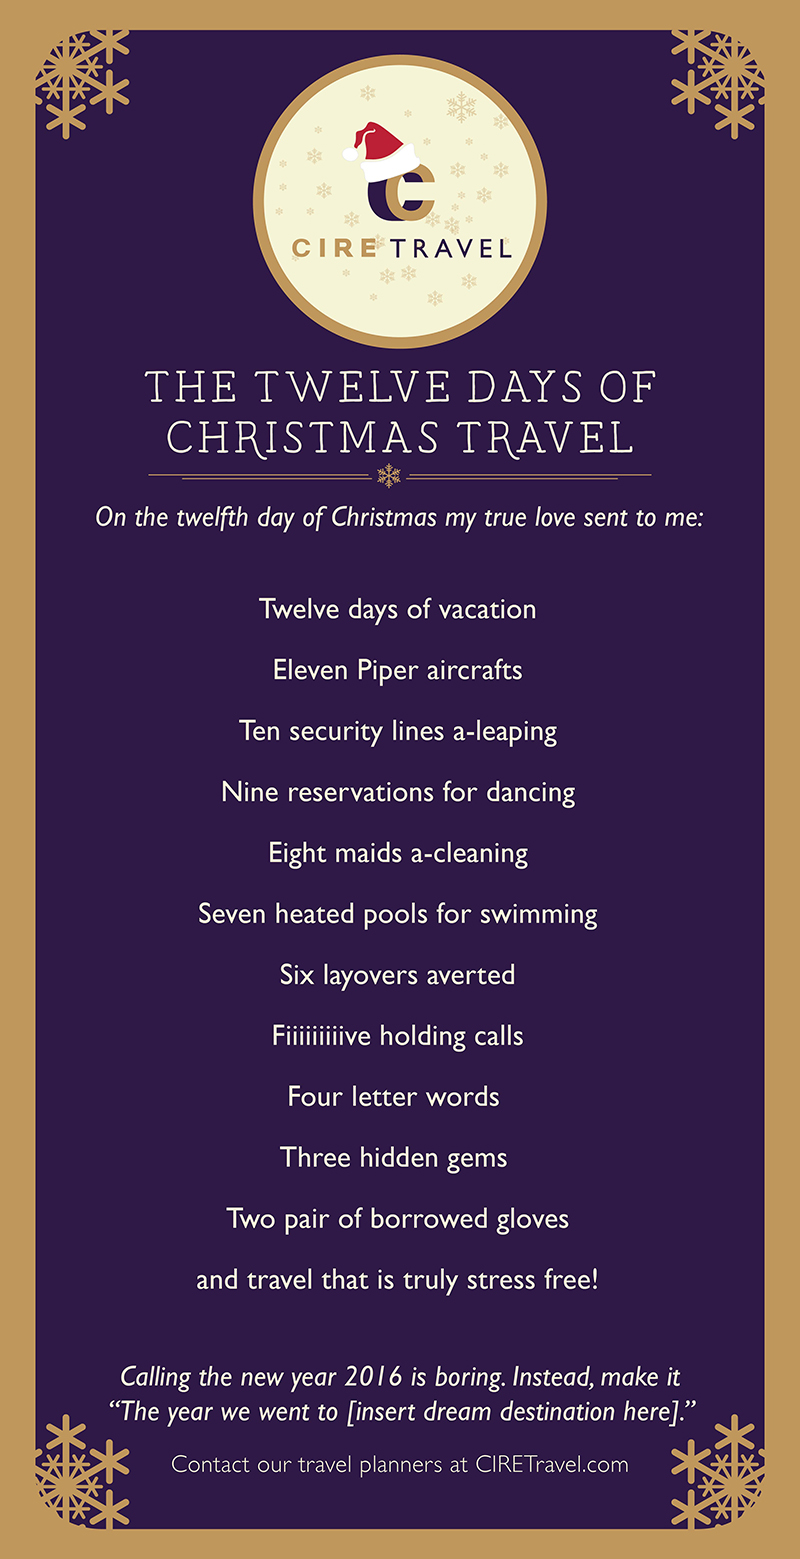 Our Version Of Caroling Travel Services Cire Travel